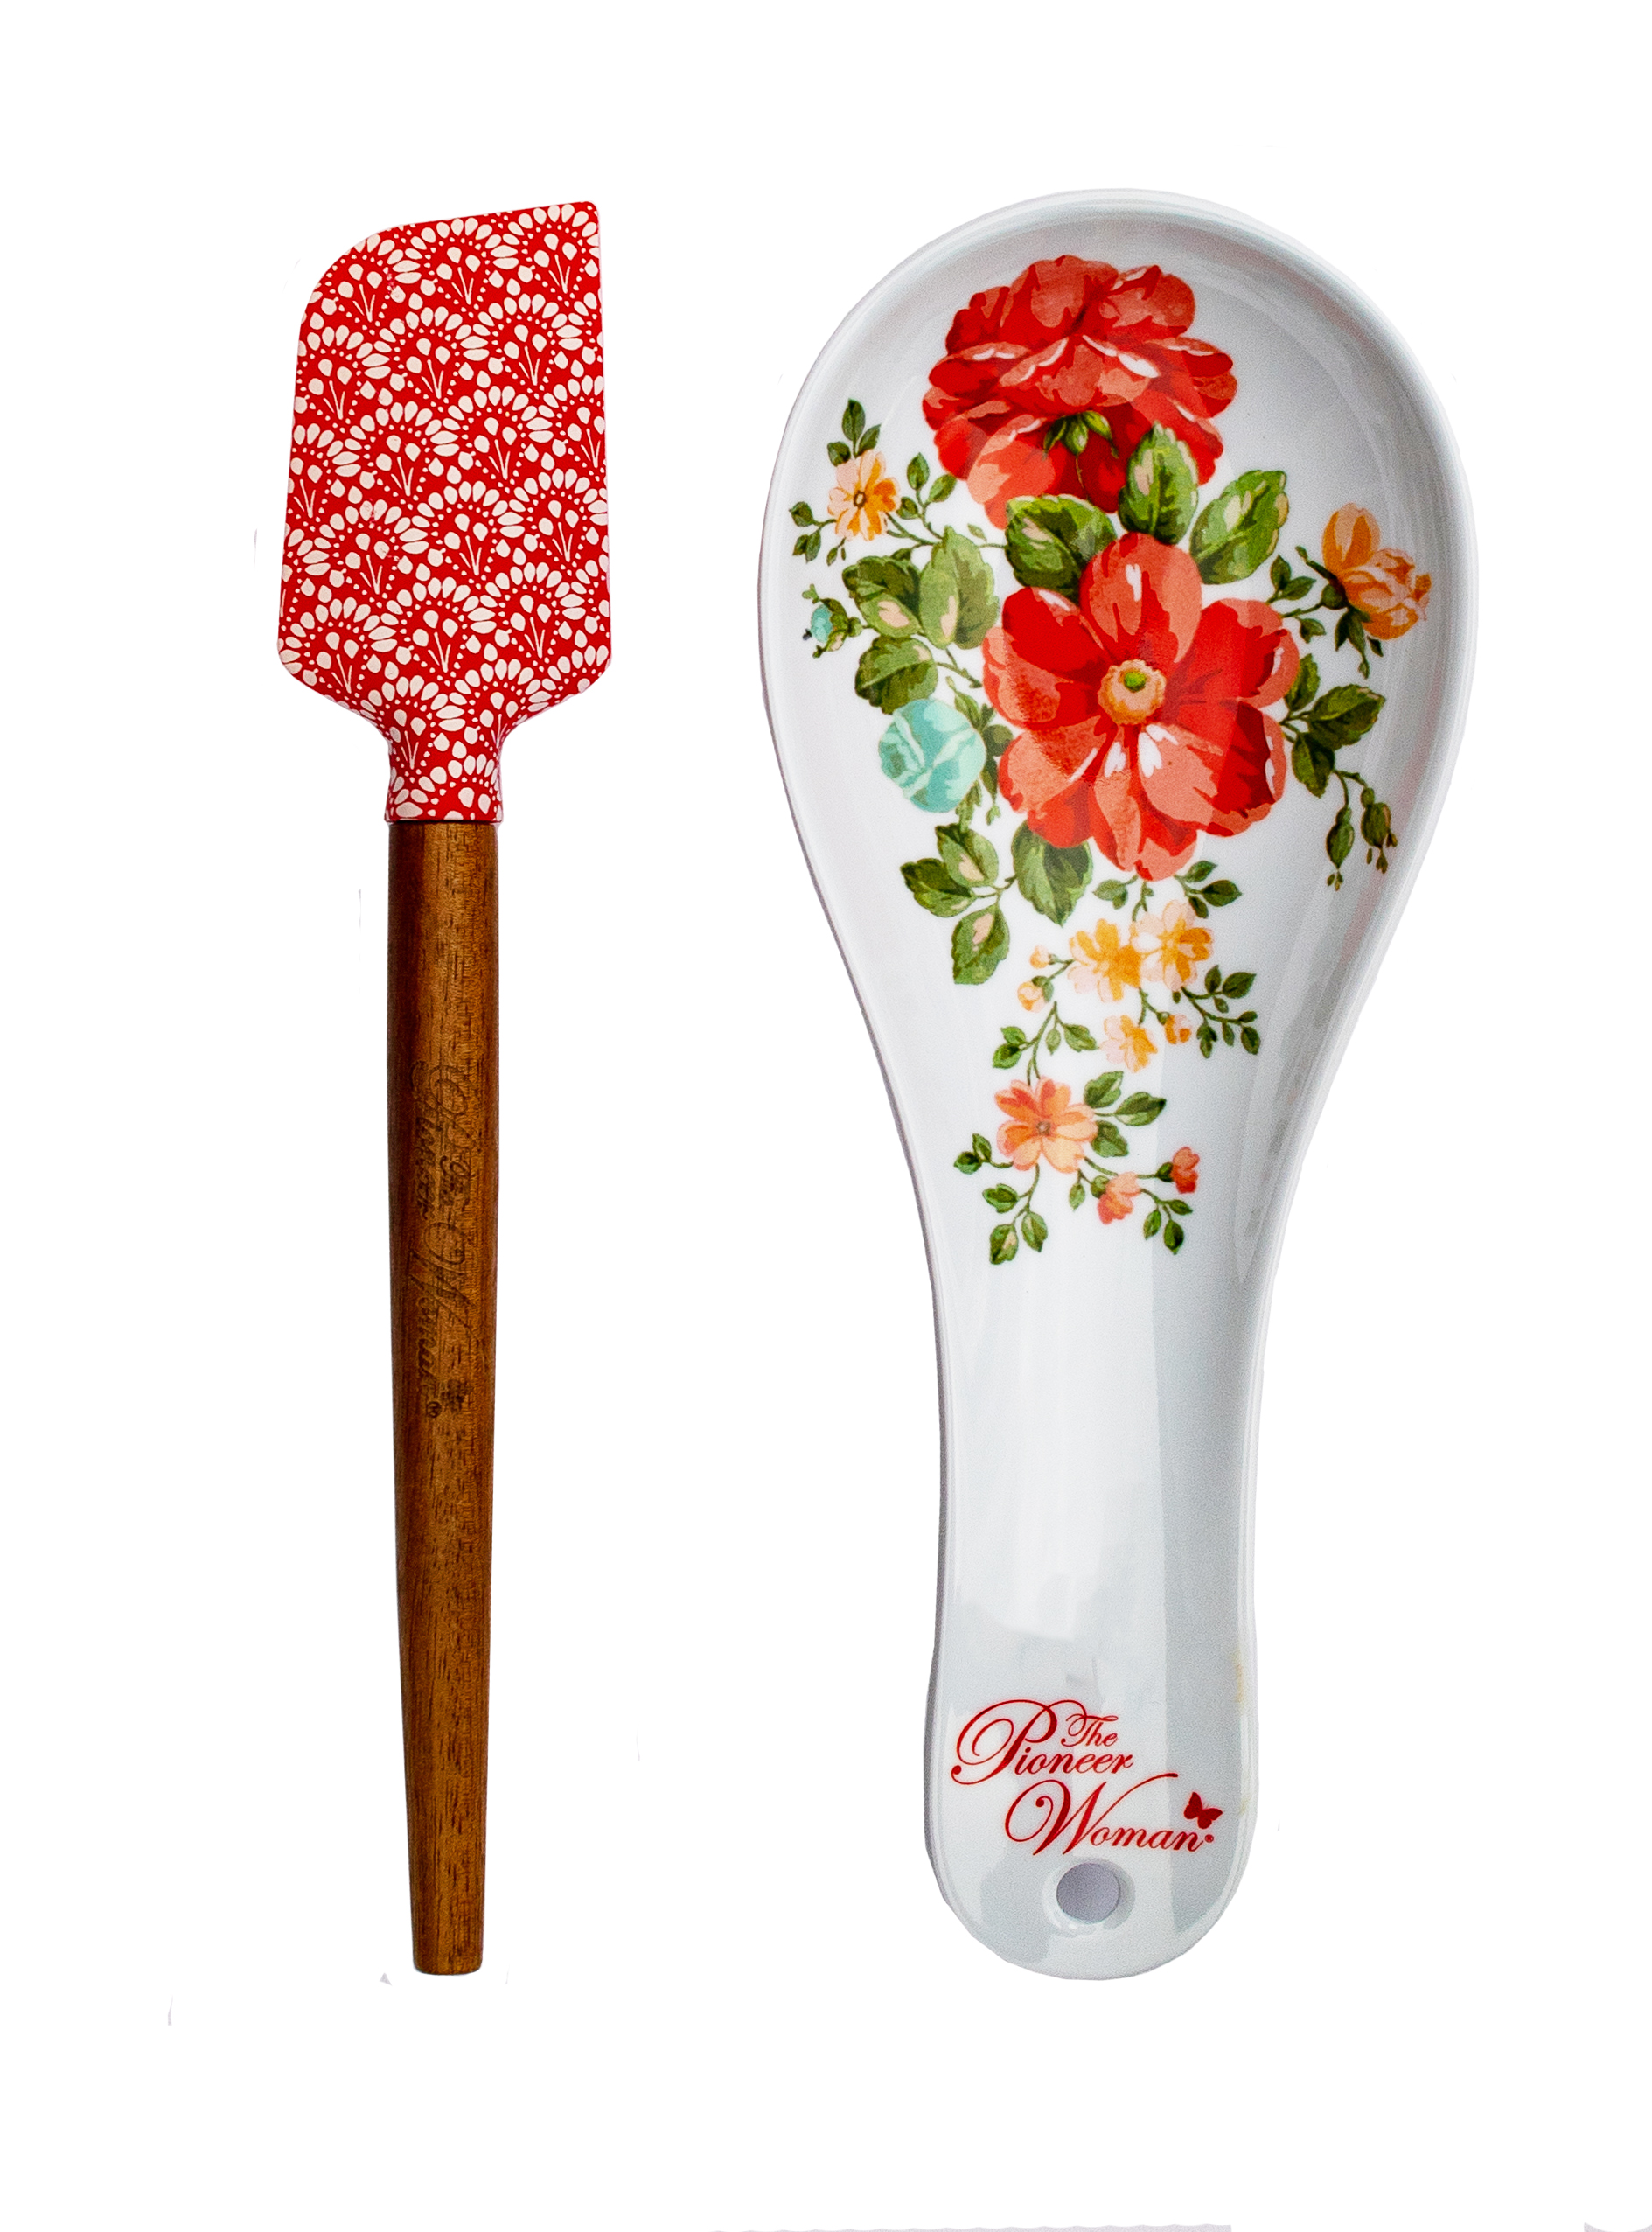 The Pioneer Woman 2 Piece Spoon Rest and Spatula Set in Vintage Floral